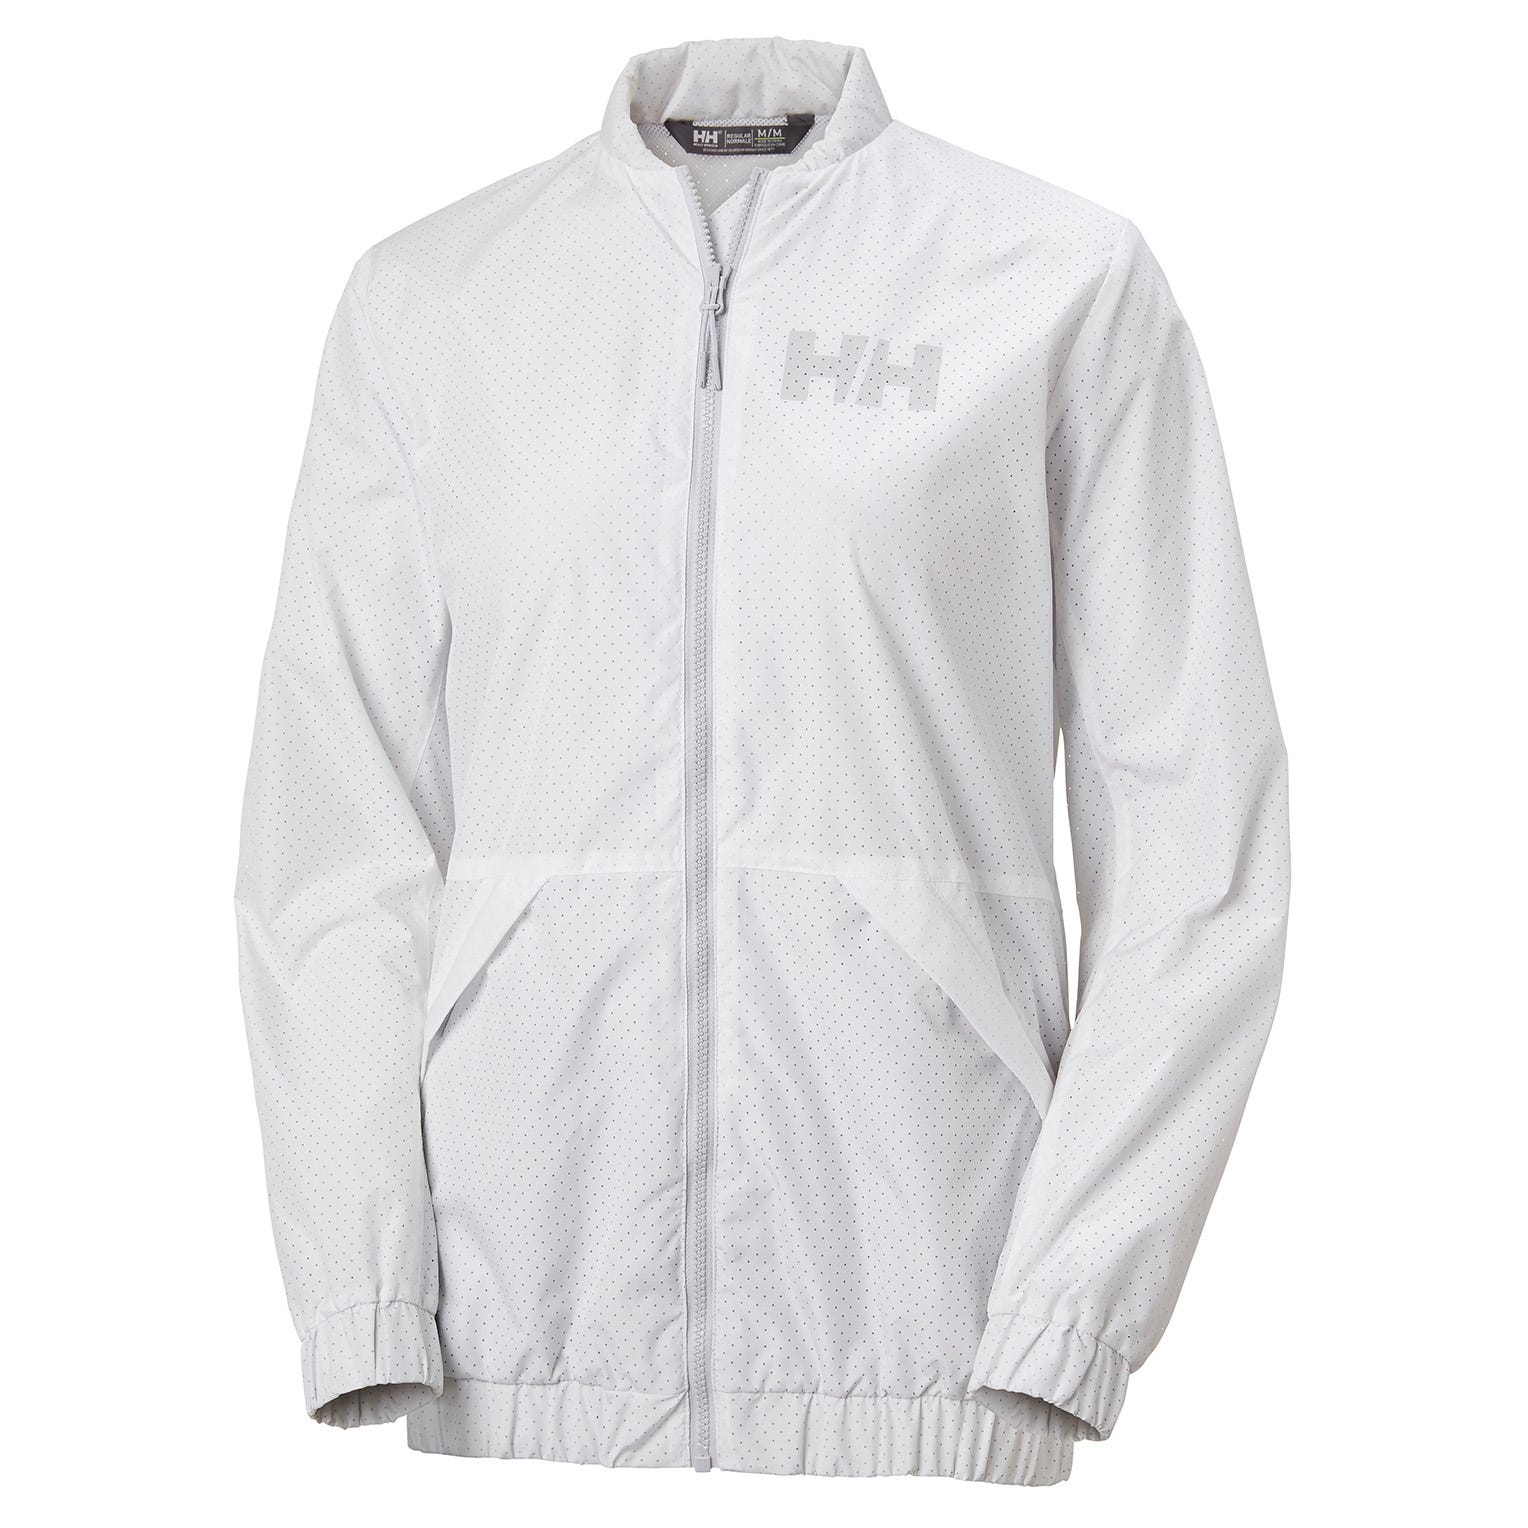 W Scape Long Jacket | Womens Summer Bomber Gb Helly Hansen White XL